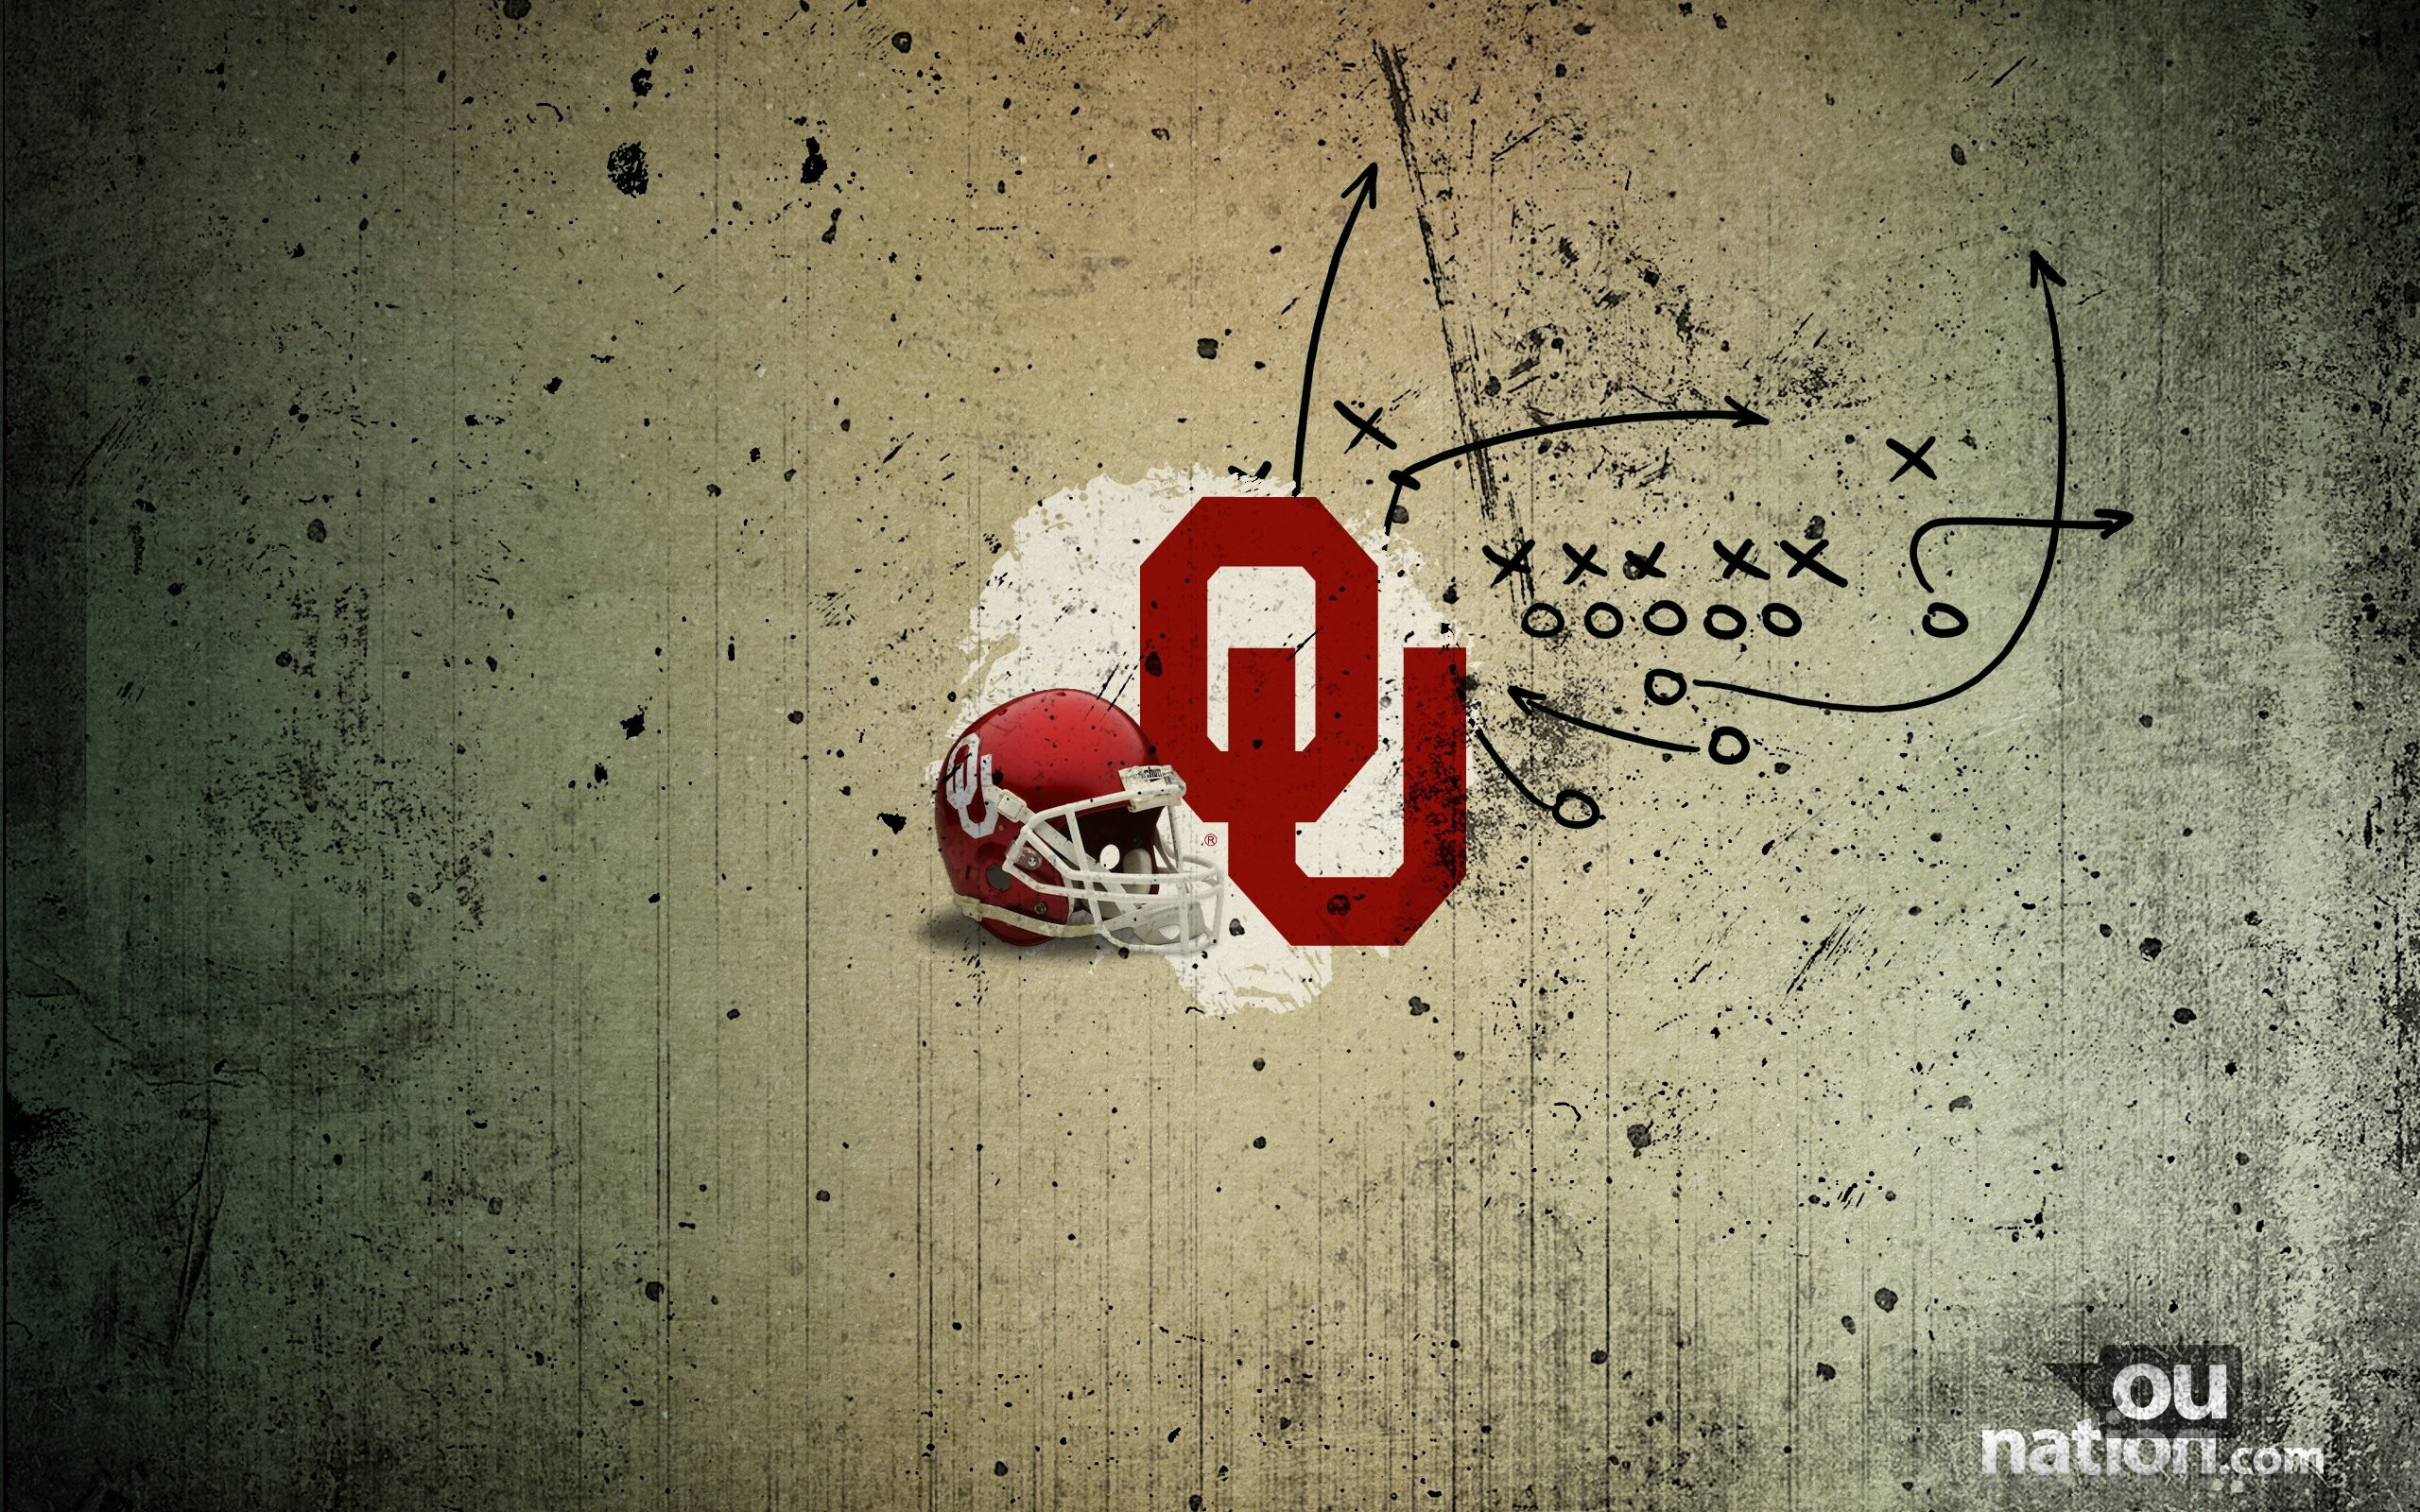 Res: 2560x1600, OKLAHOMA SOONERS college football wallpaper |  | 594060 |  WallpaperUP